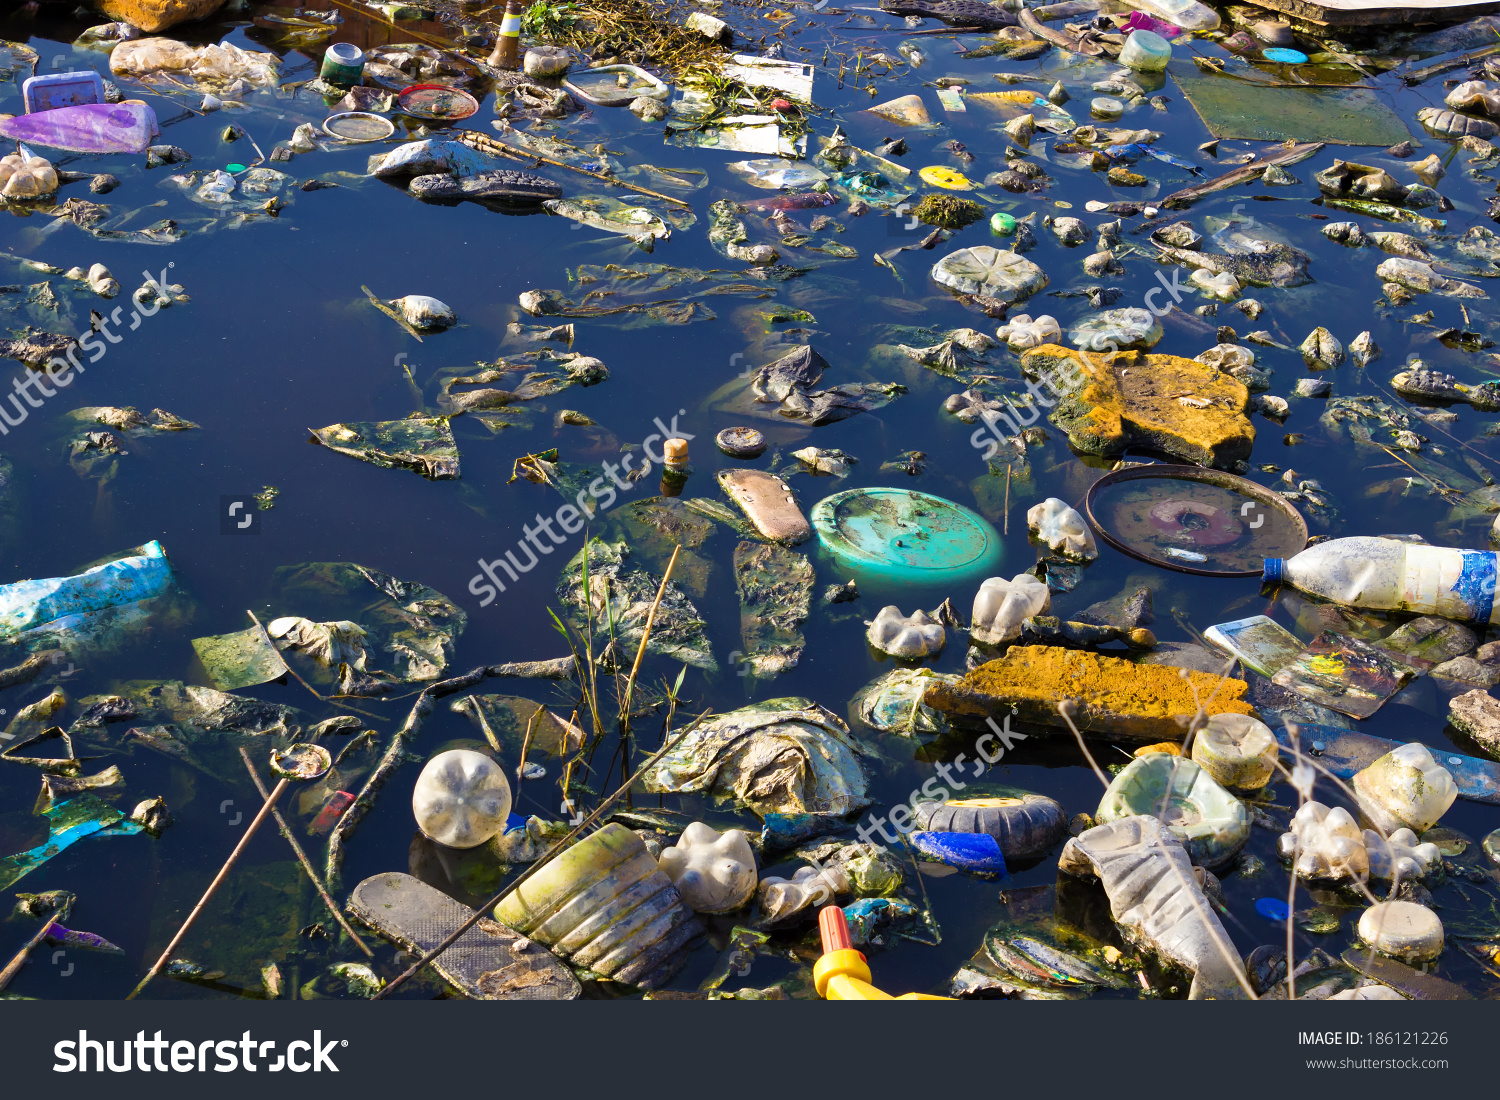 Polluted river clipart free download River That Polluted Various Garbage Trash Stock Photo 186121226 ... free download